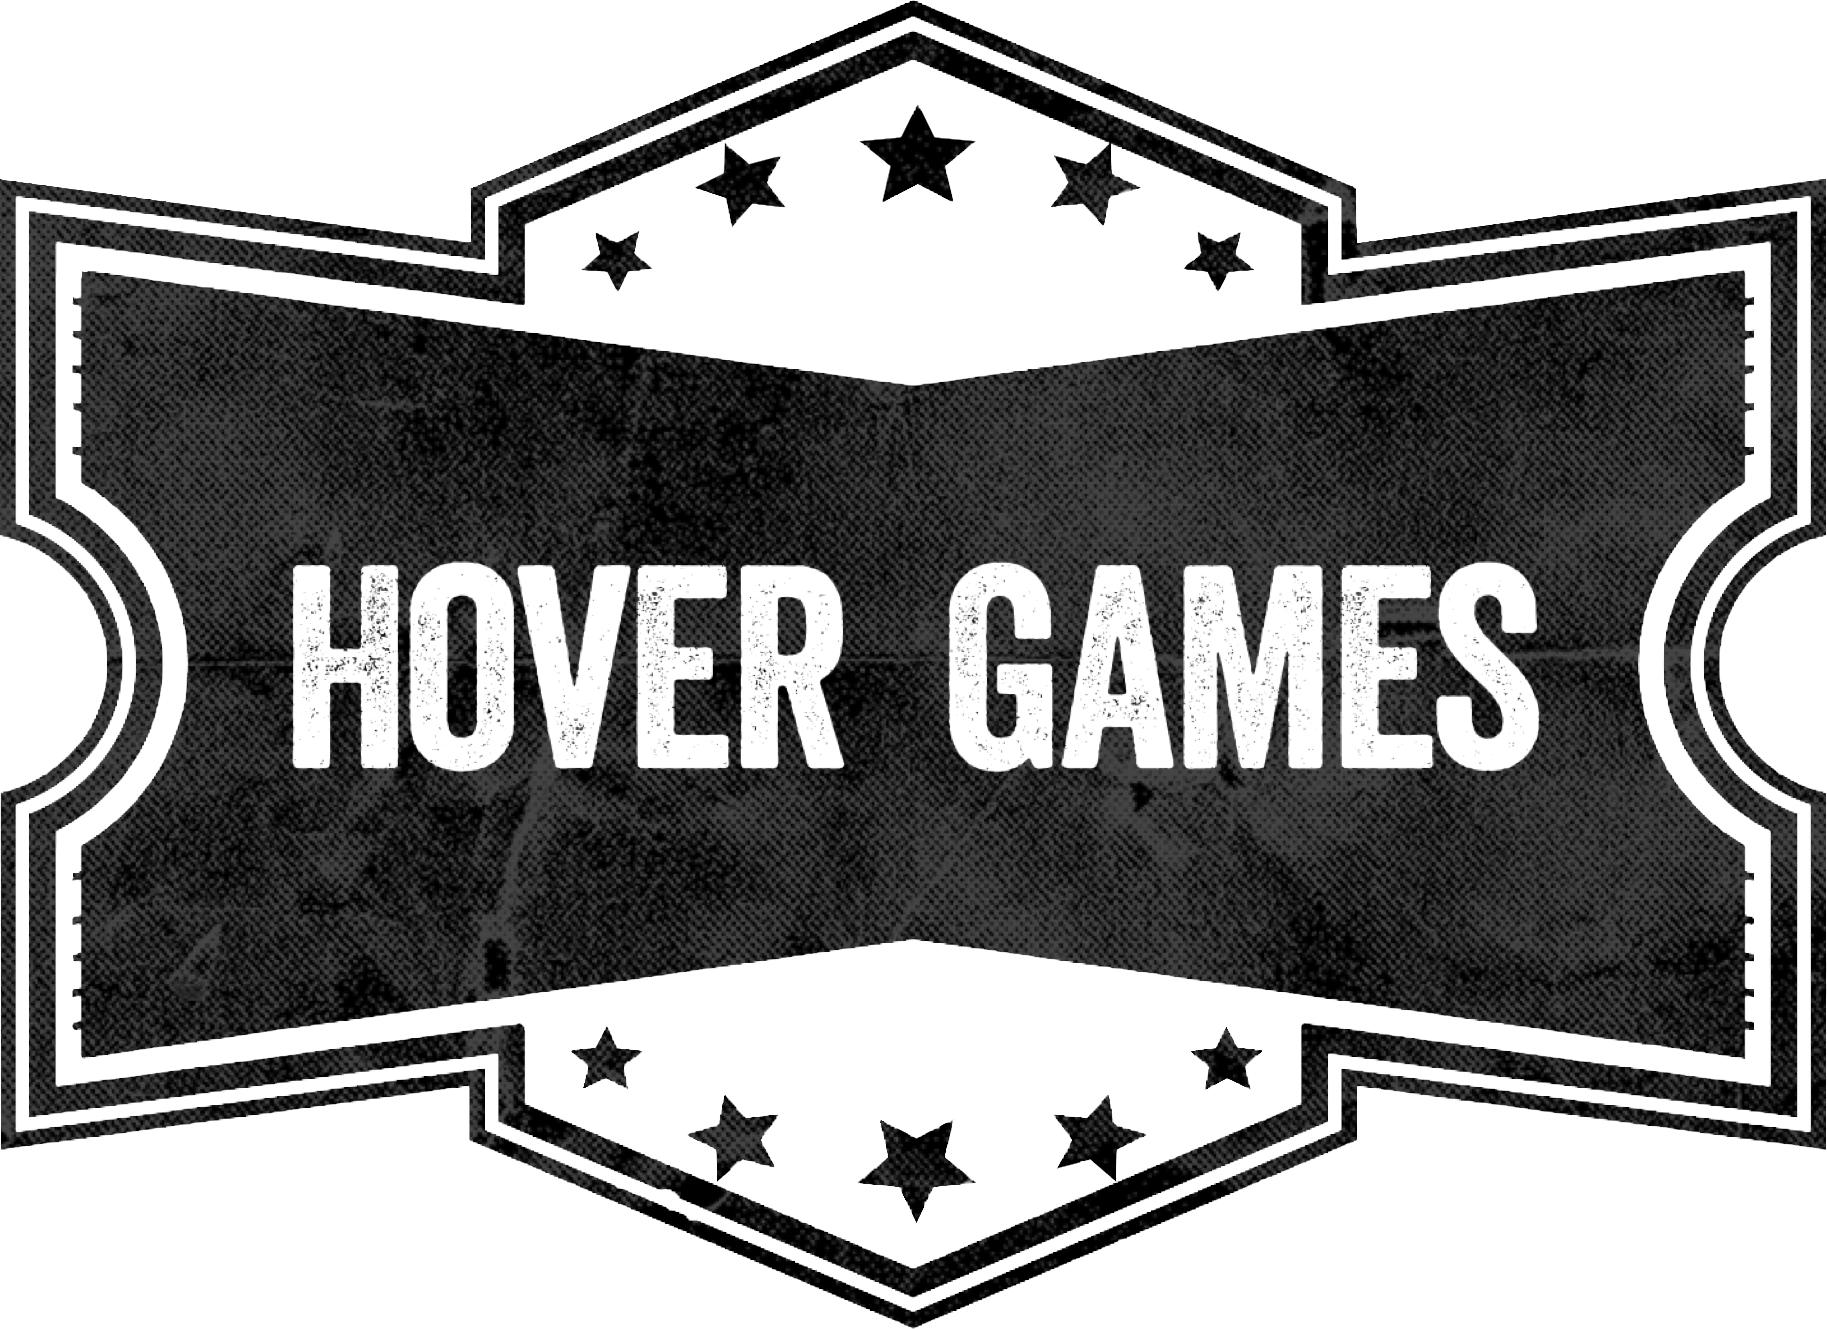 HOVER GAMES